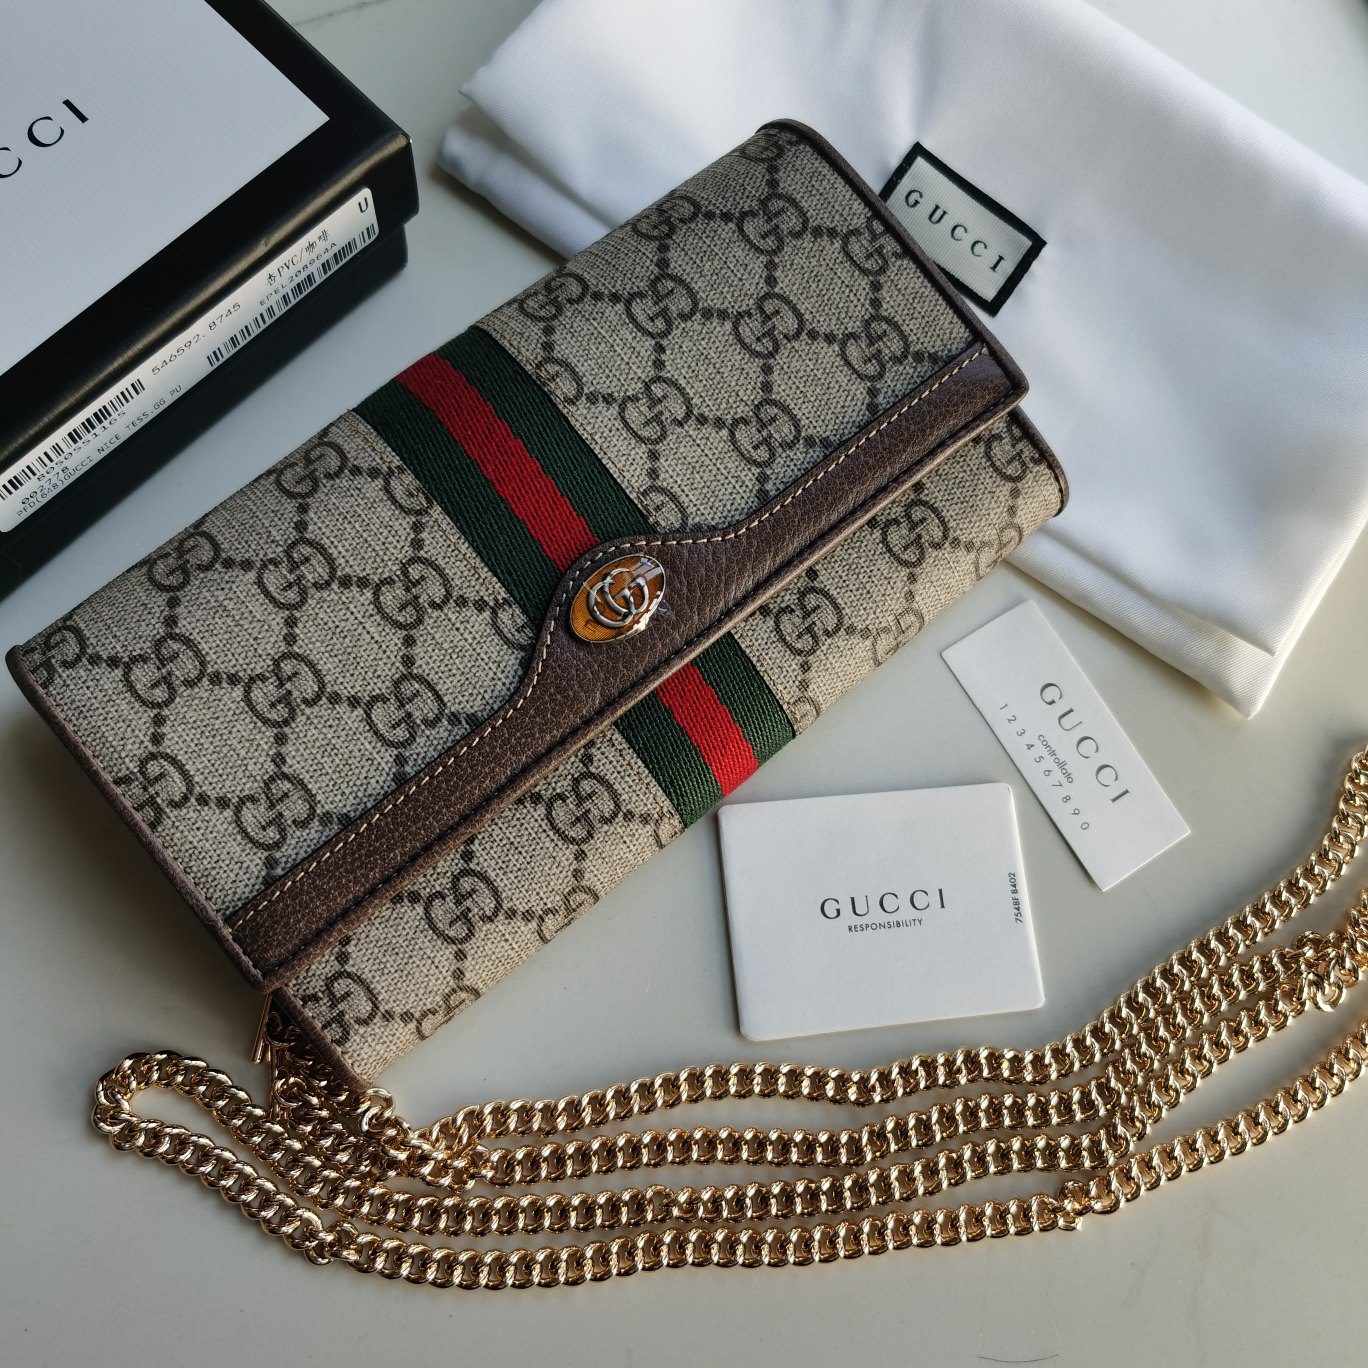 Copy Gucci 546592 Women Ophidia GG Chain Wallet Brown Textured Leather Trim